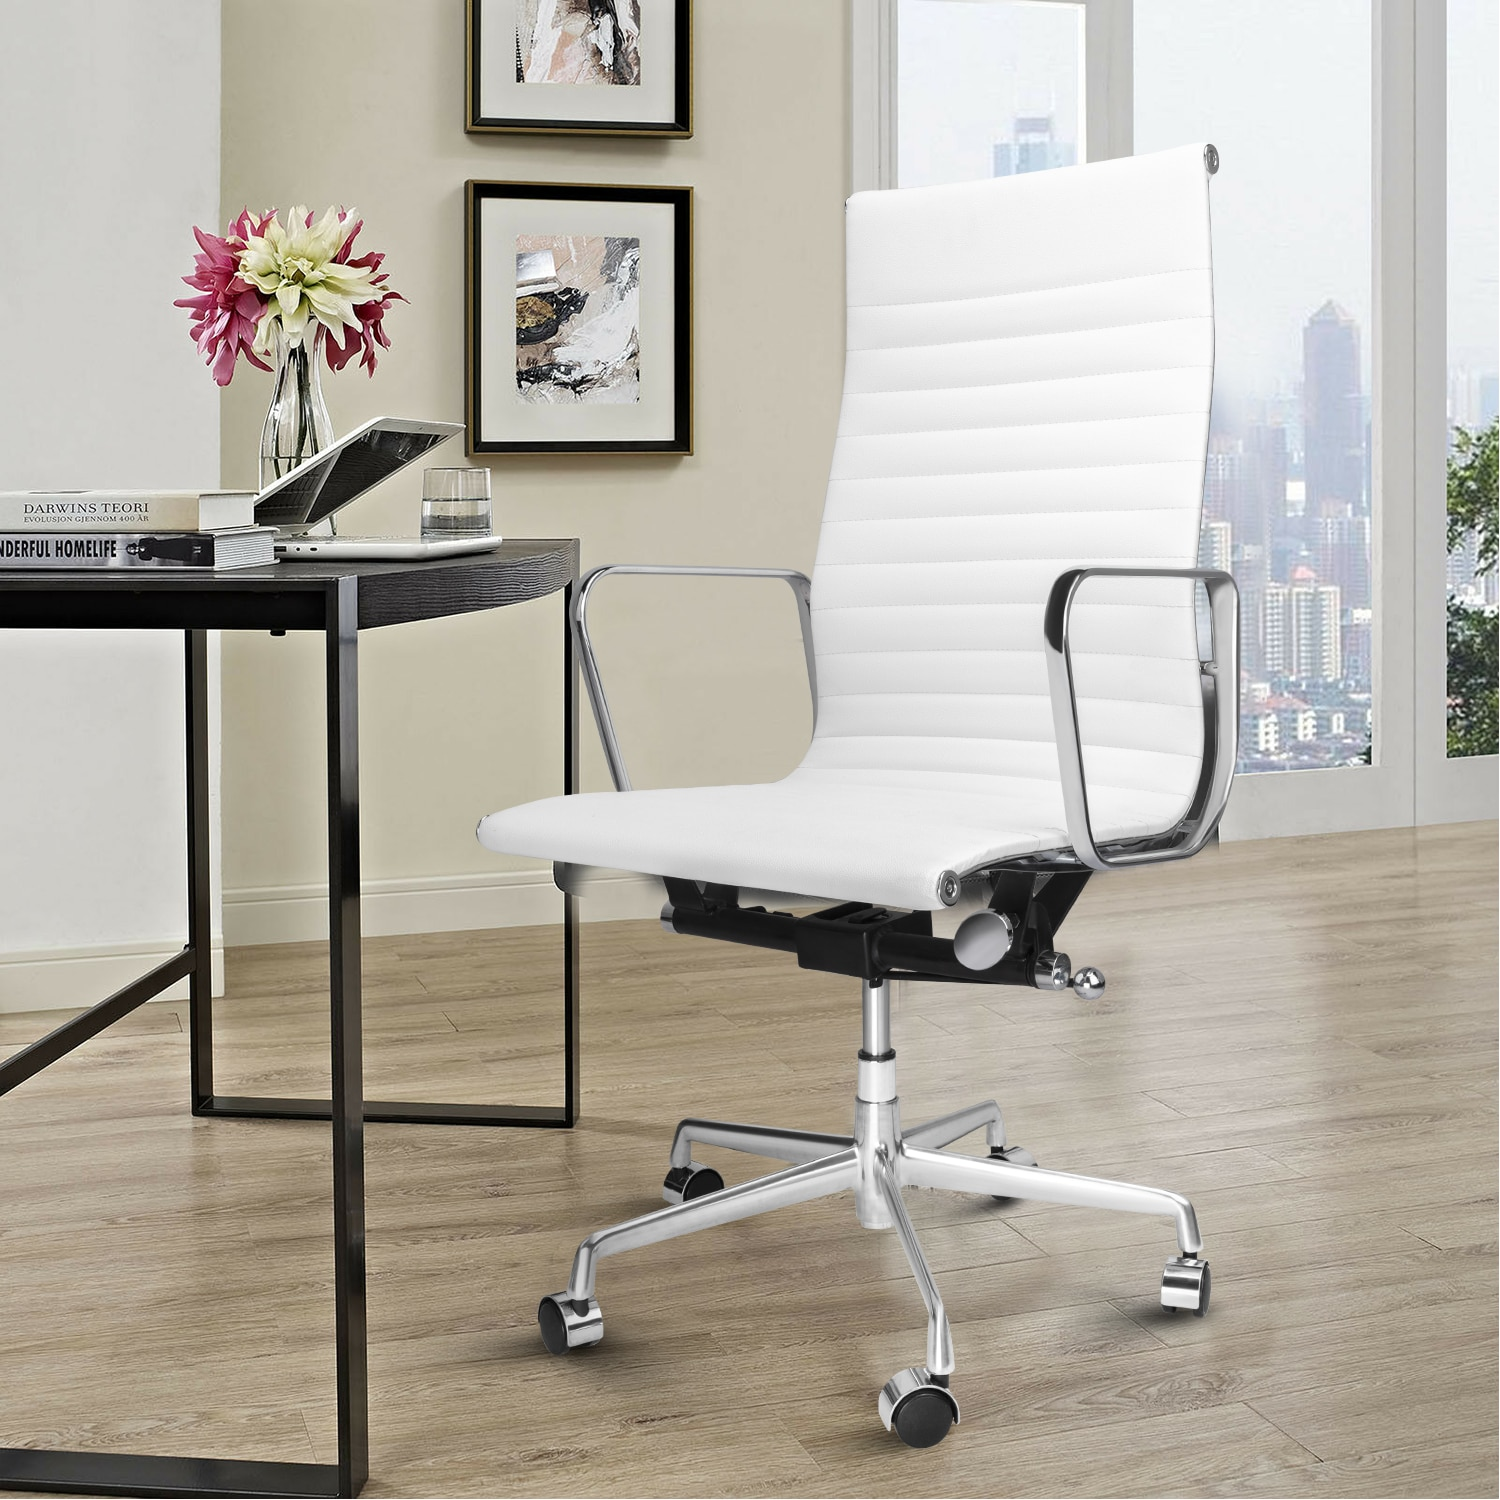 He9d11a7eaad44874a5496bf843b9484dv - High Back Aluminium Group Office Chair Replica Swivel Chair with Armrests Chromed Base Gaming Chair for Office Meeting Room